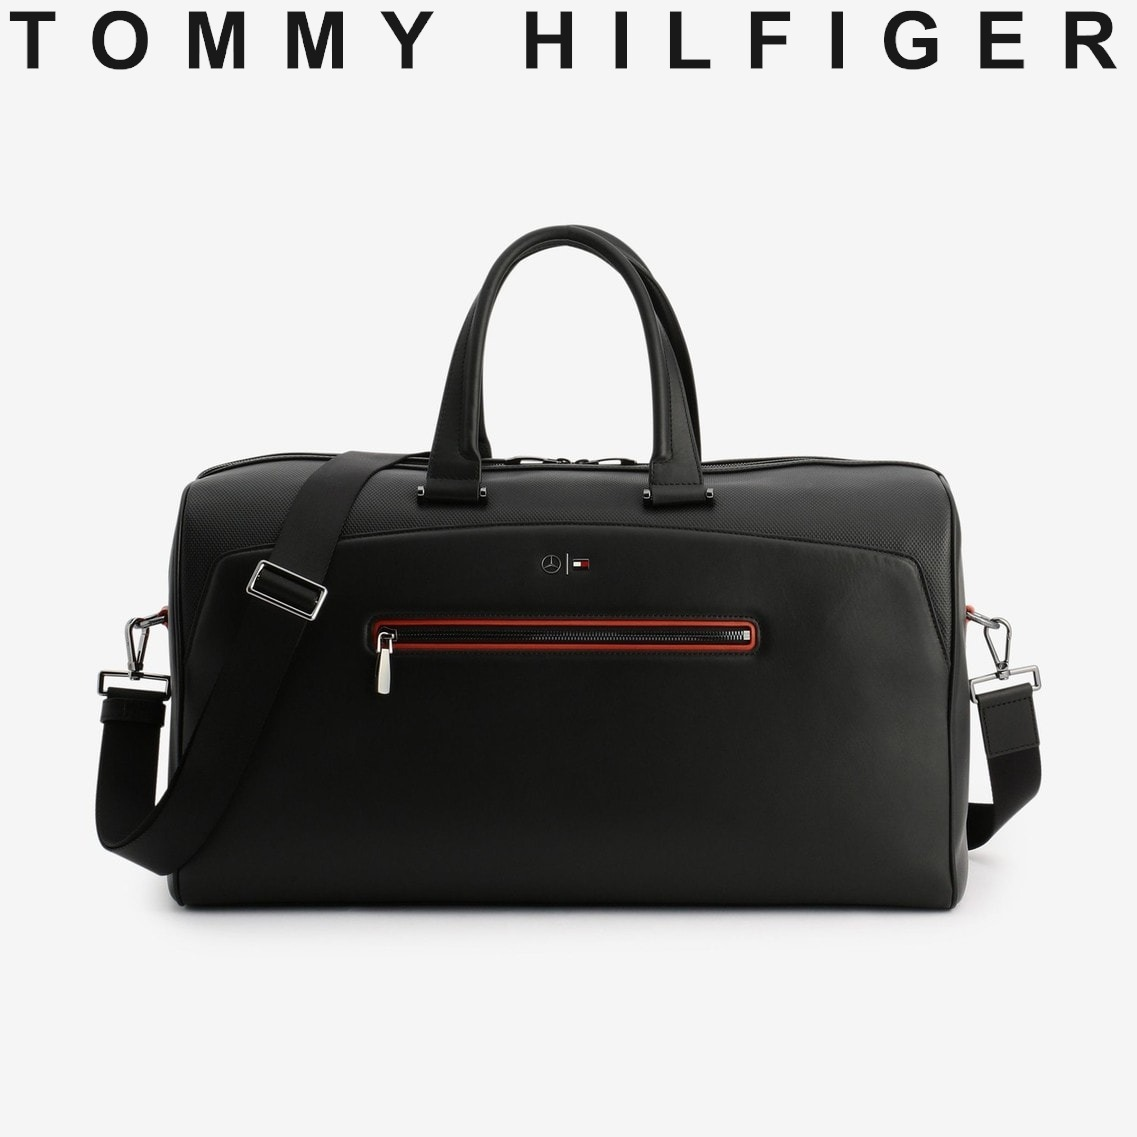 TOMMY HILFIGER Mercedes-Benz Leather Weekend Bag すぐ届く (Tommy Hilfiger/ボストンバッグ) AM06797000